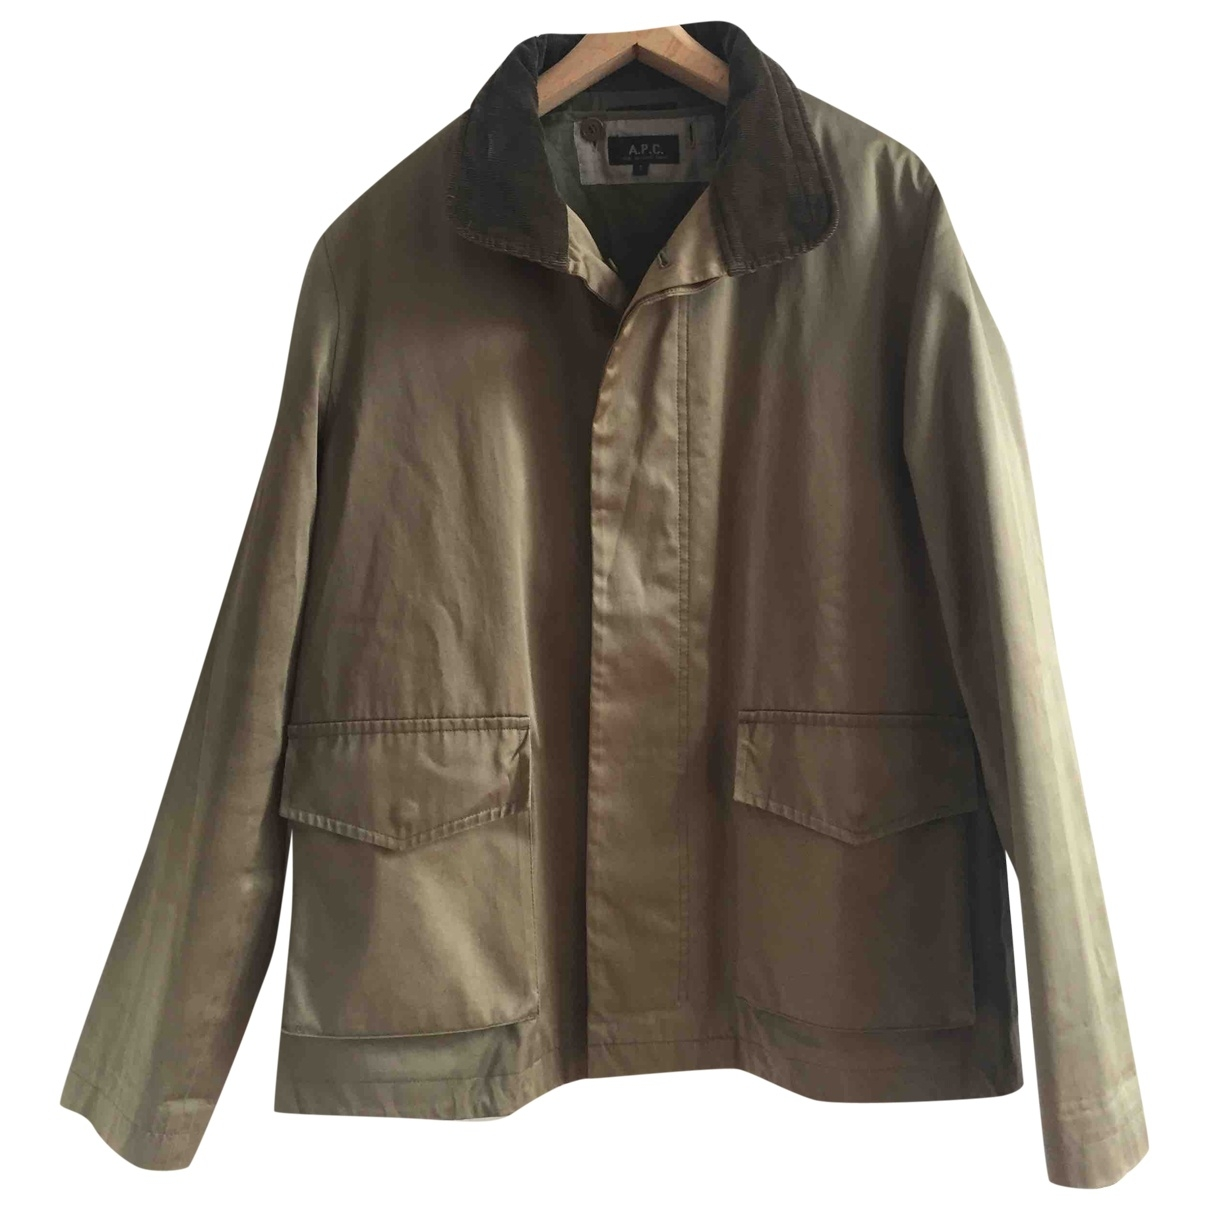 Apc \N Green Cotton Leather jacket for Women S International